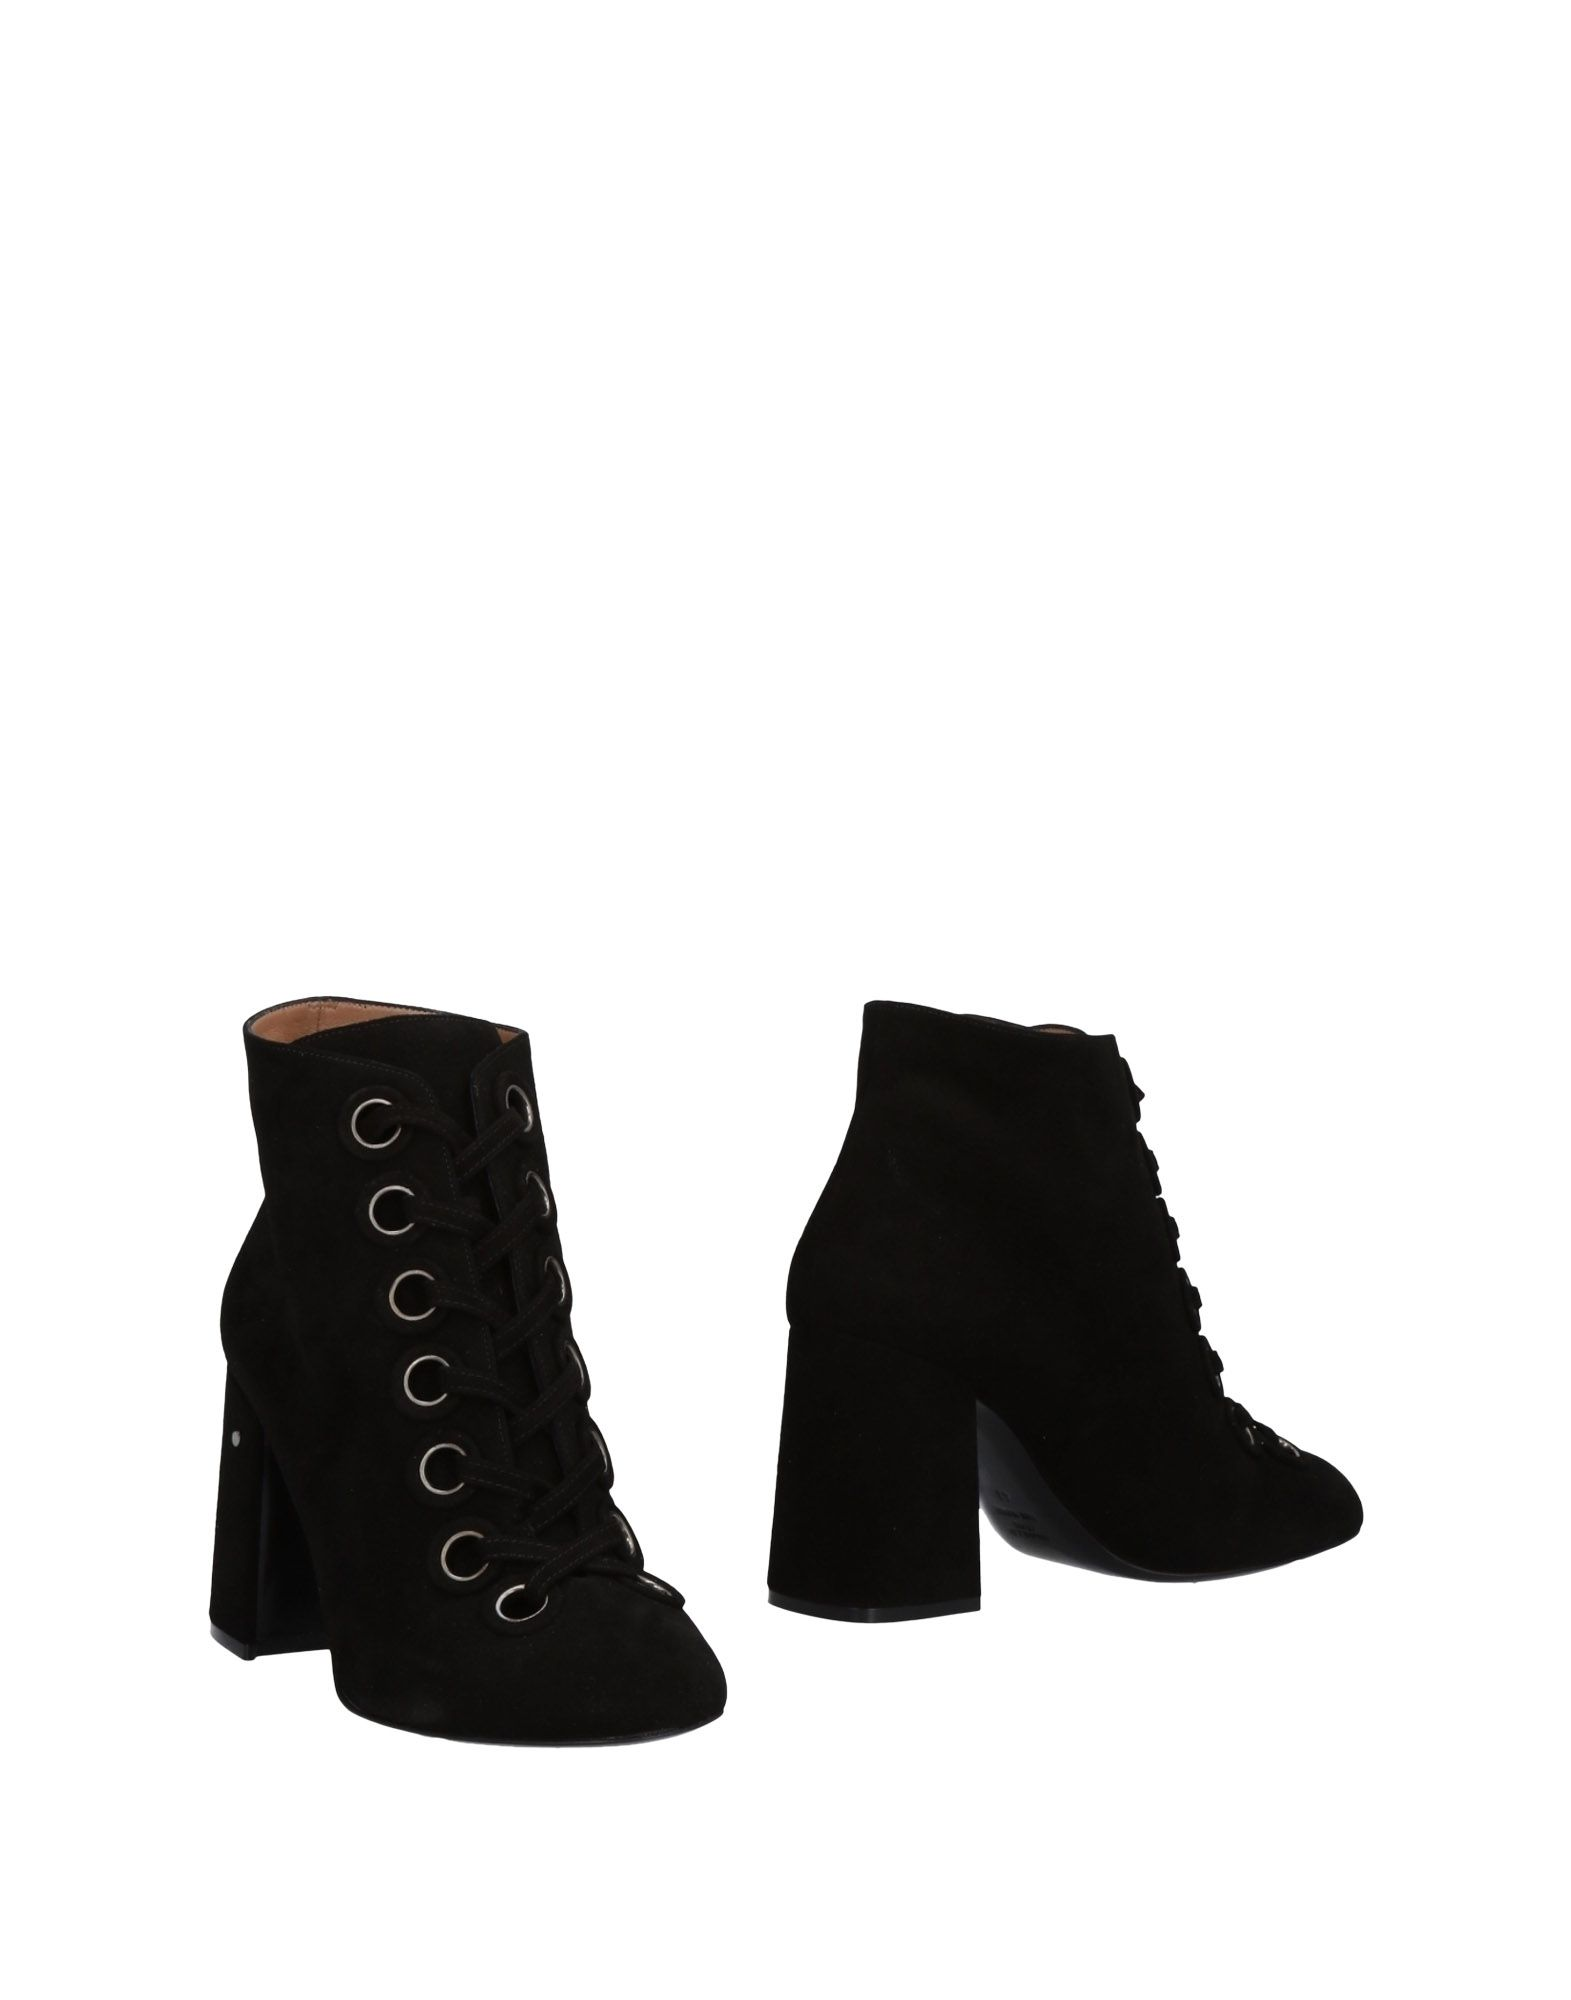 Laurence Dacade Ankle Dacade Boot - Women Laurence Dacade Ankle Ankle Boots online on  United Kingdom - 11486651NG b9cdea